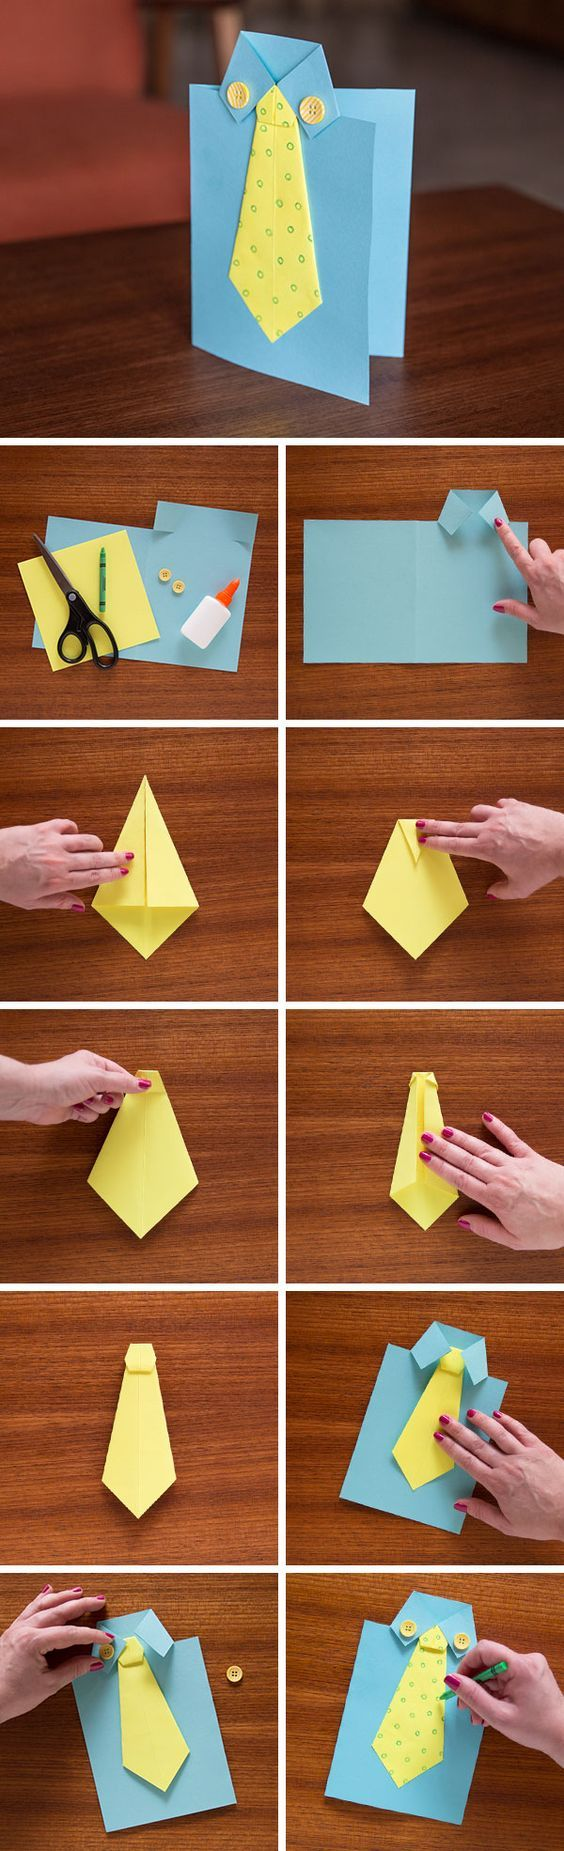 DIY-gift-ideas-venuerific-blog-origami-card